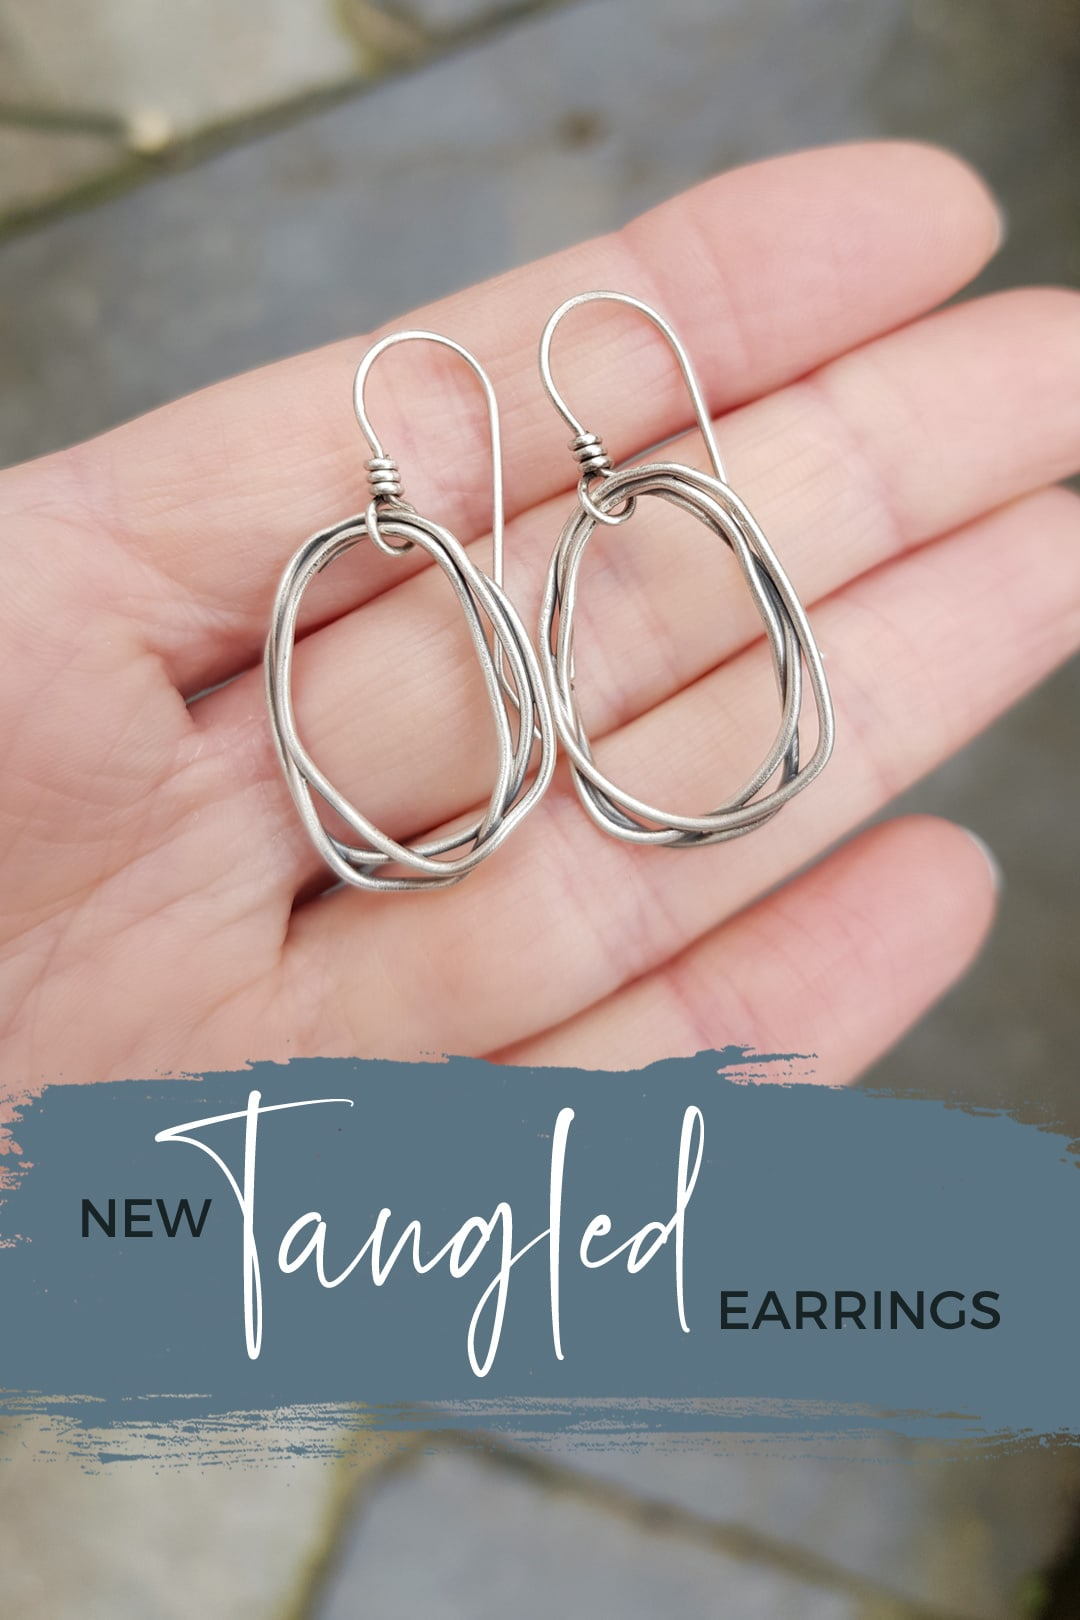 Tangled silver earrings